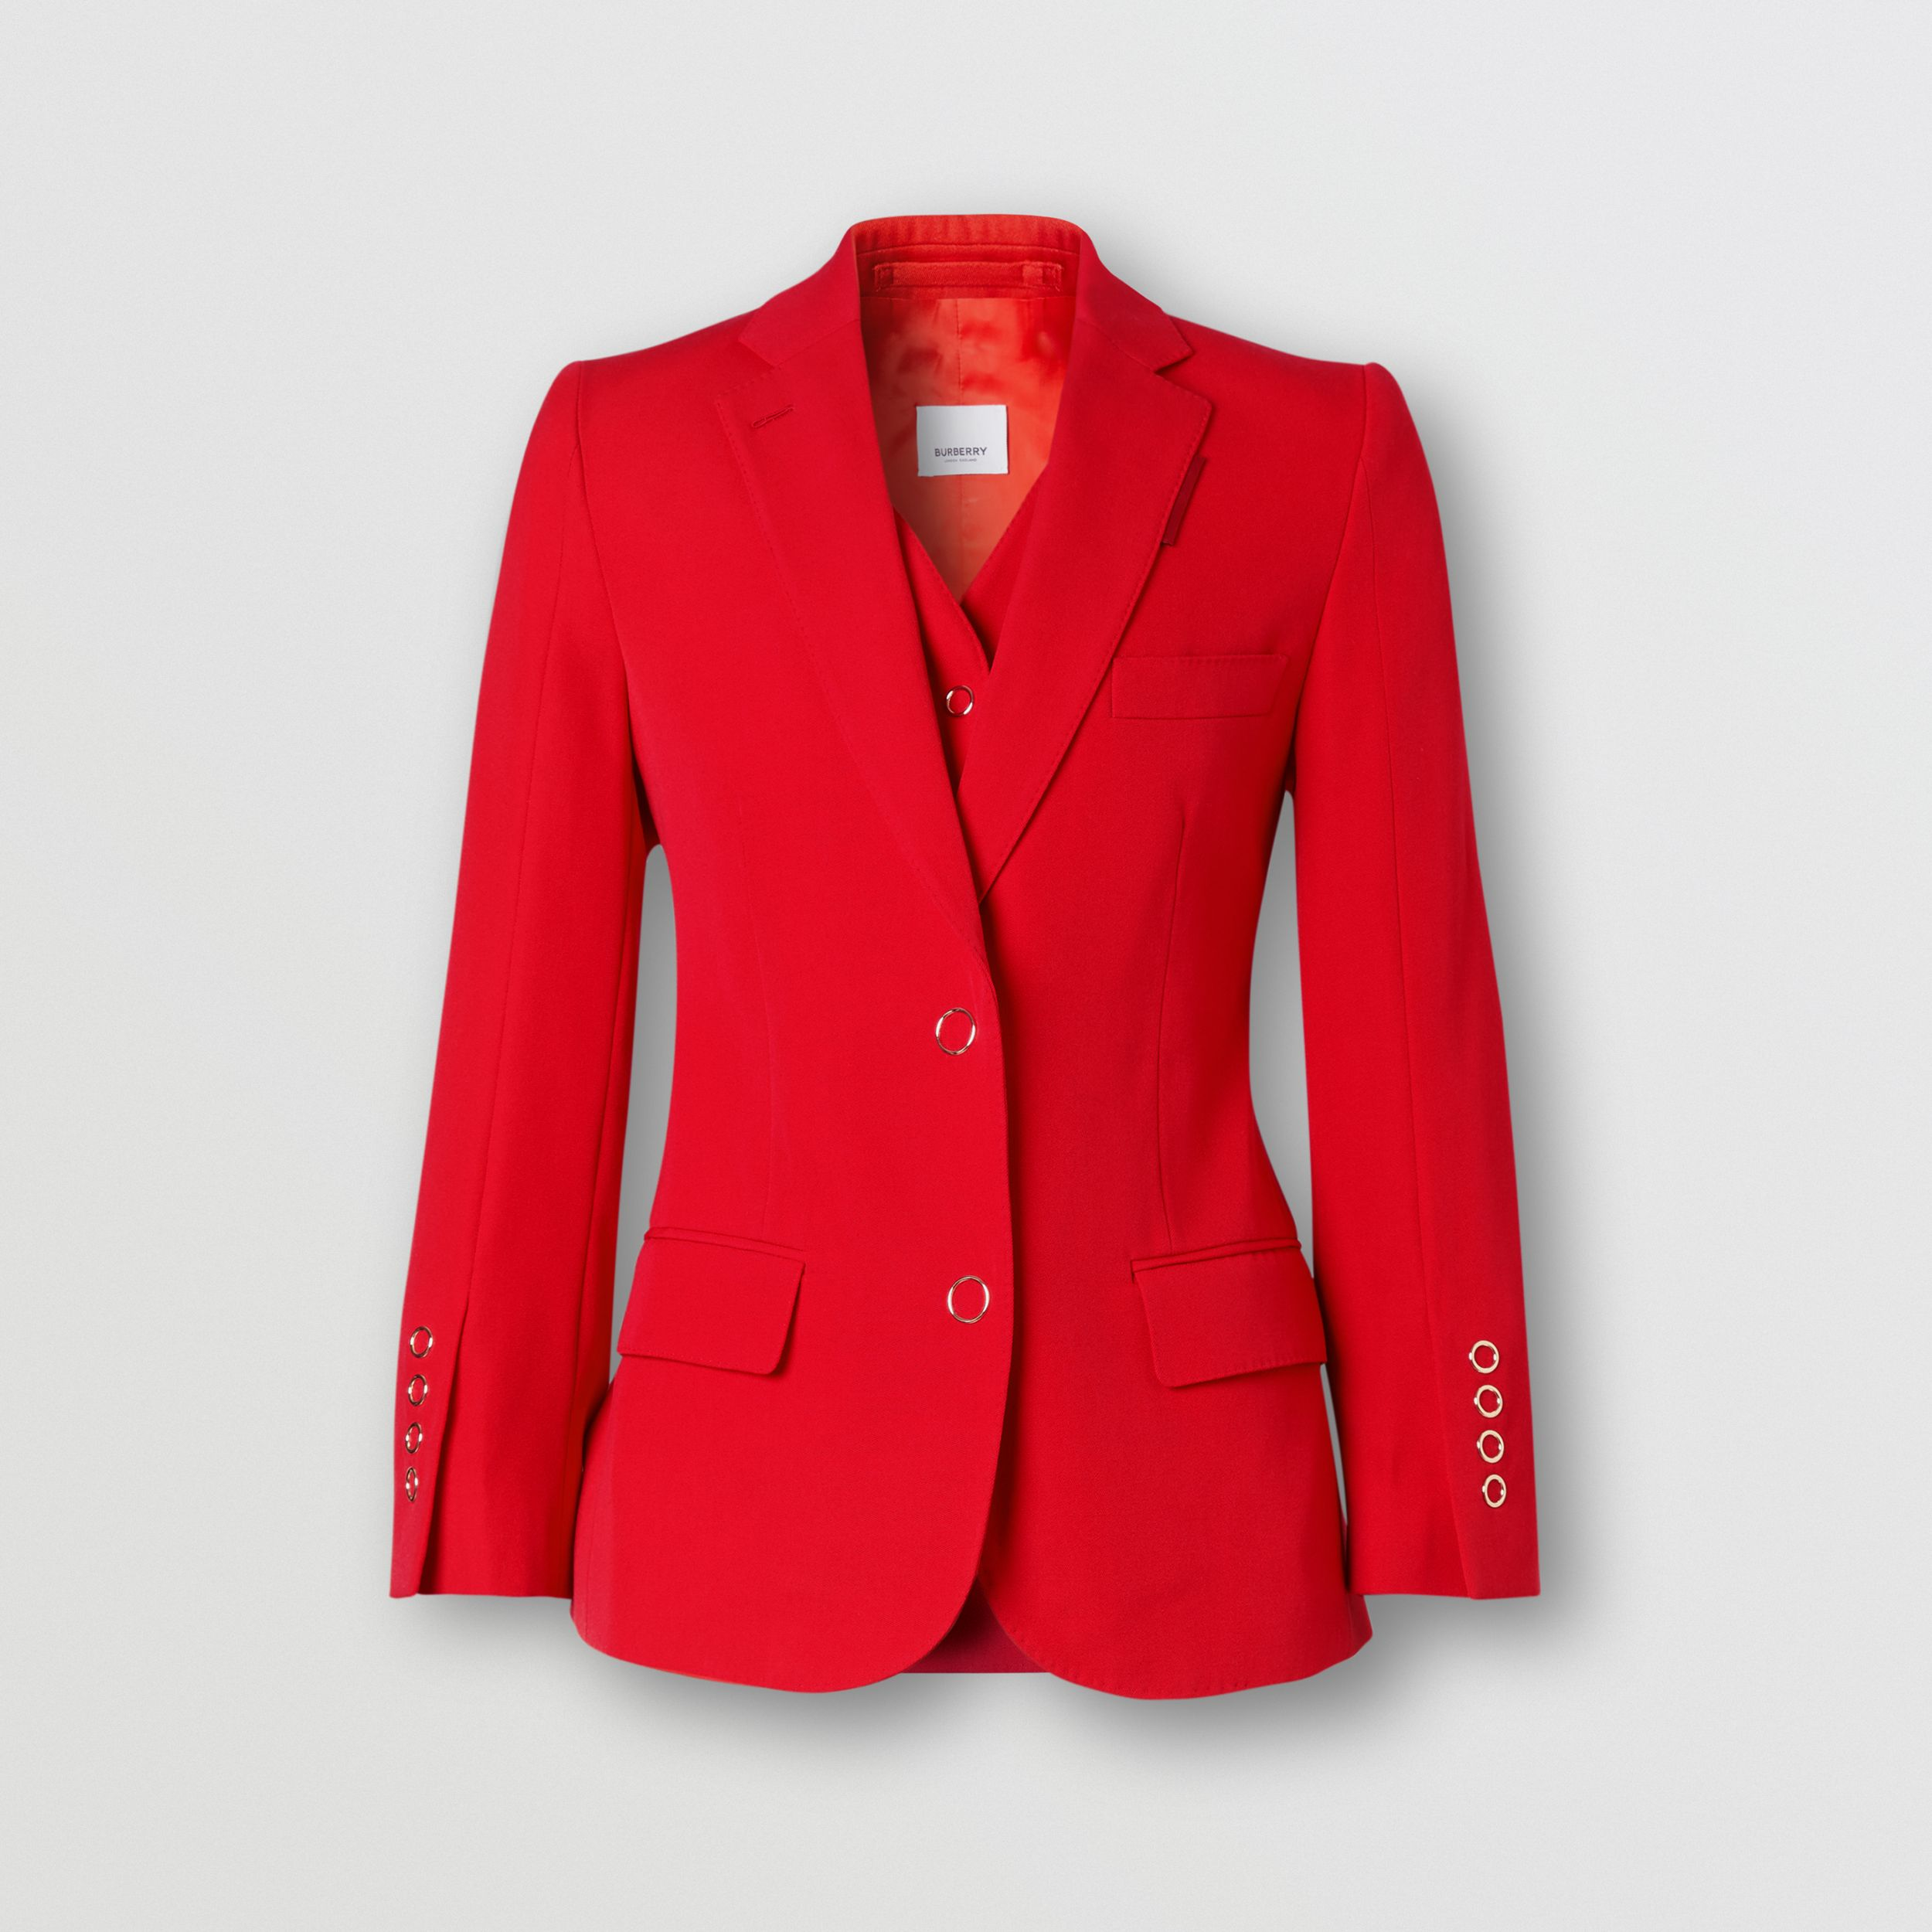 Waistcoat Panel Wool Tailored Jacket in Bright Red - Women | Burberry - 4